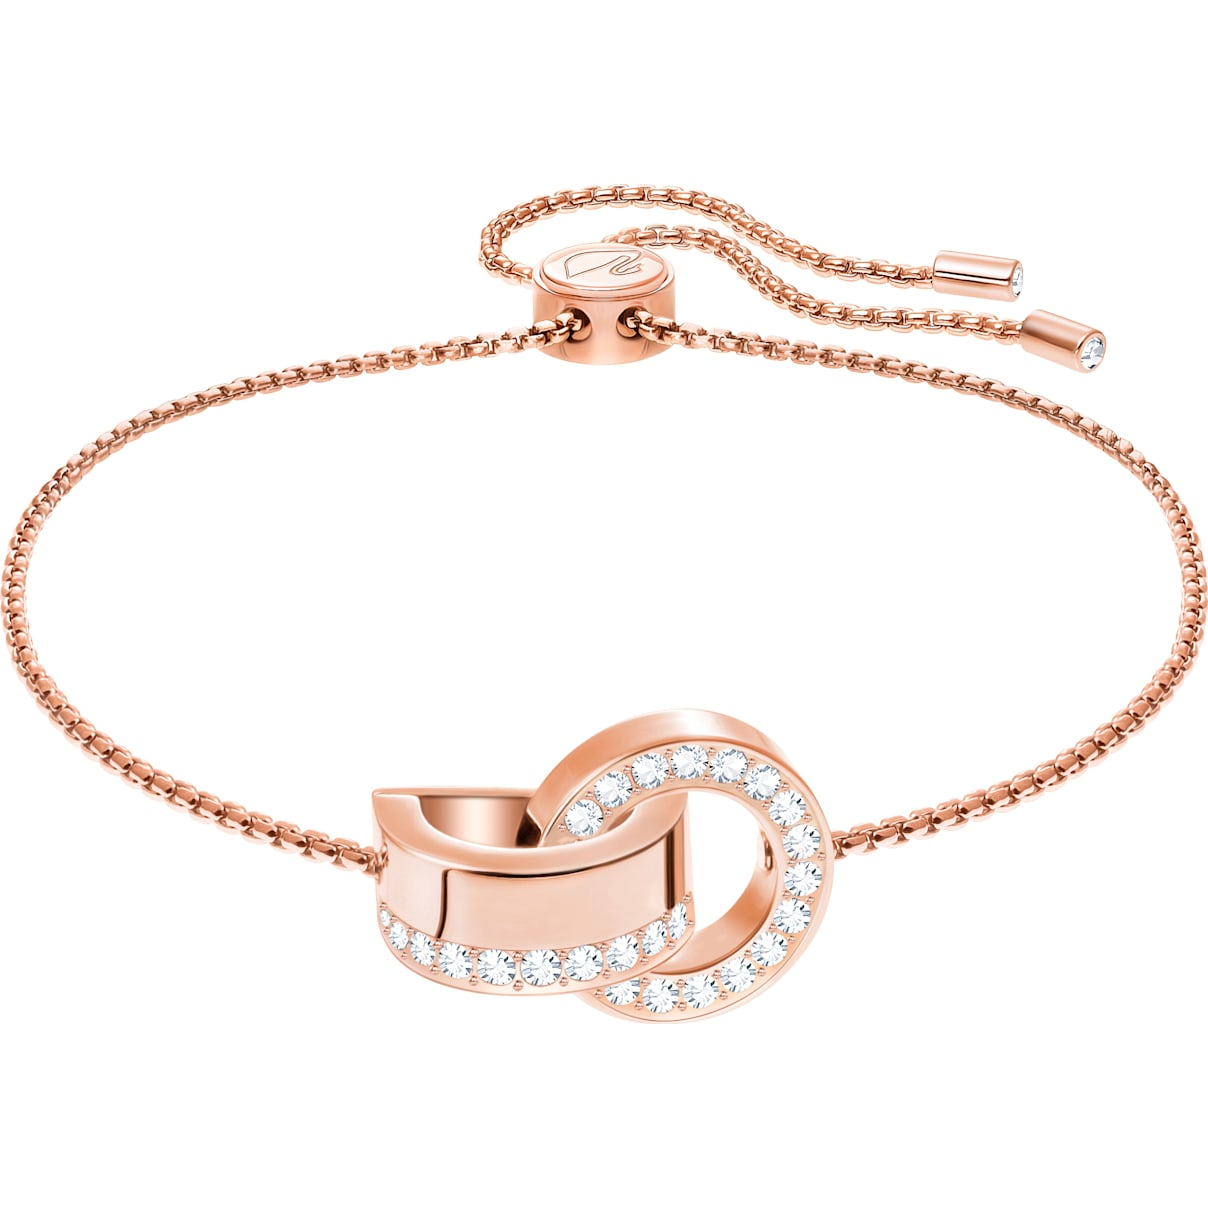 Swarovski Hollow Bracelet, White, Rose-gold tone plated